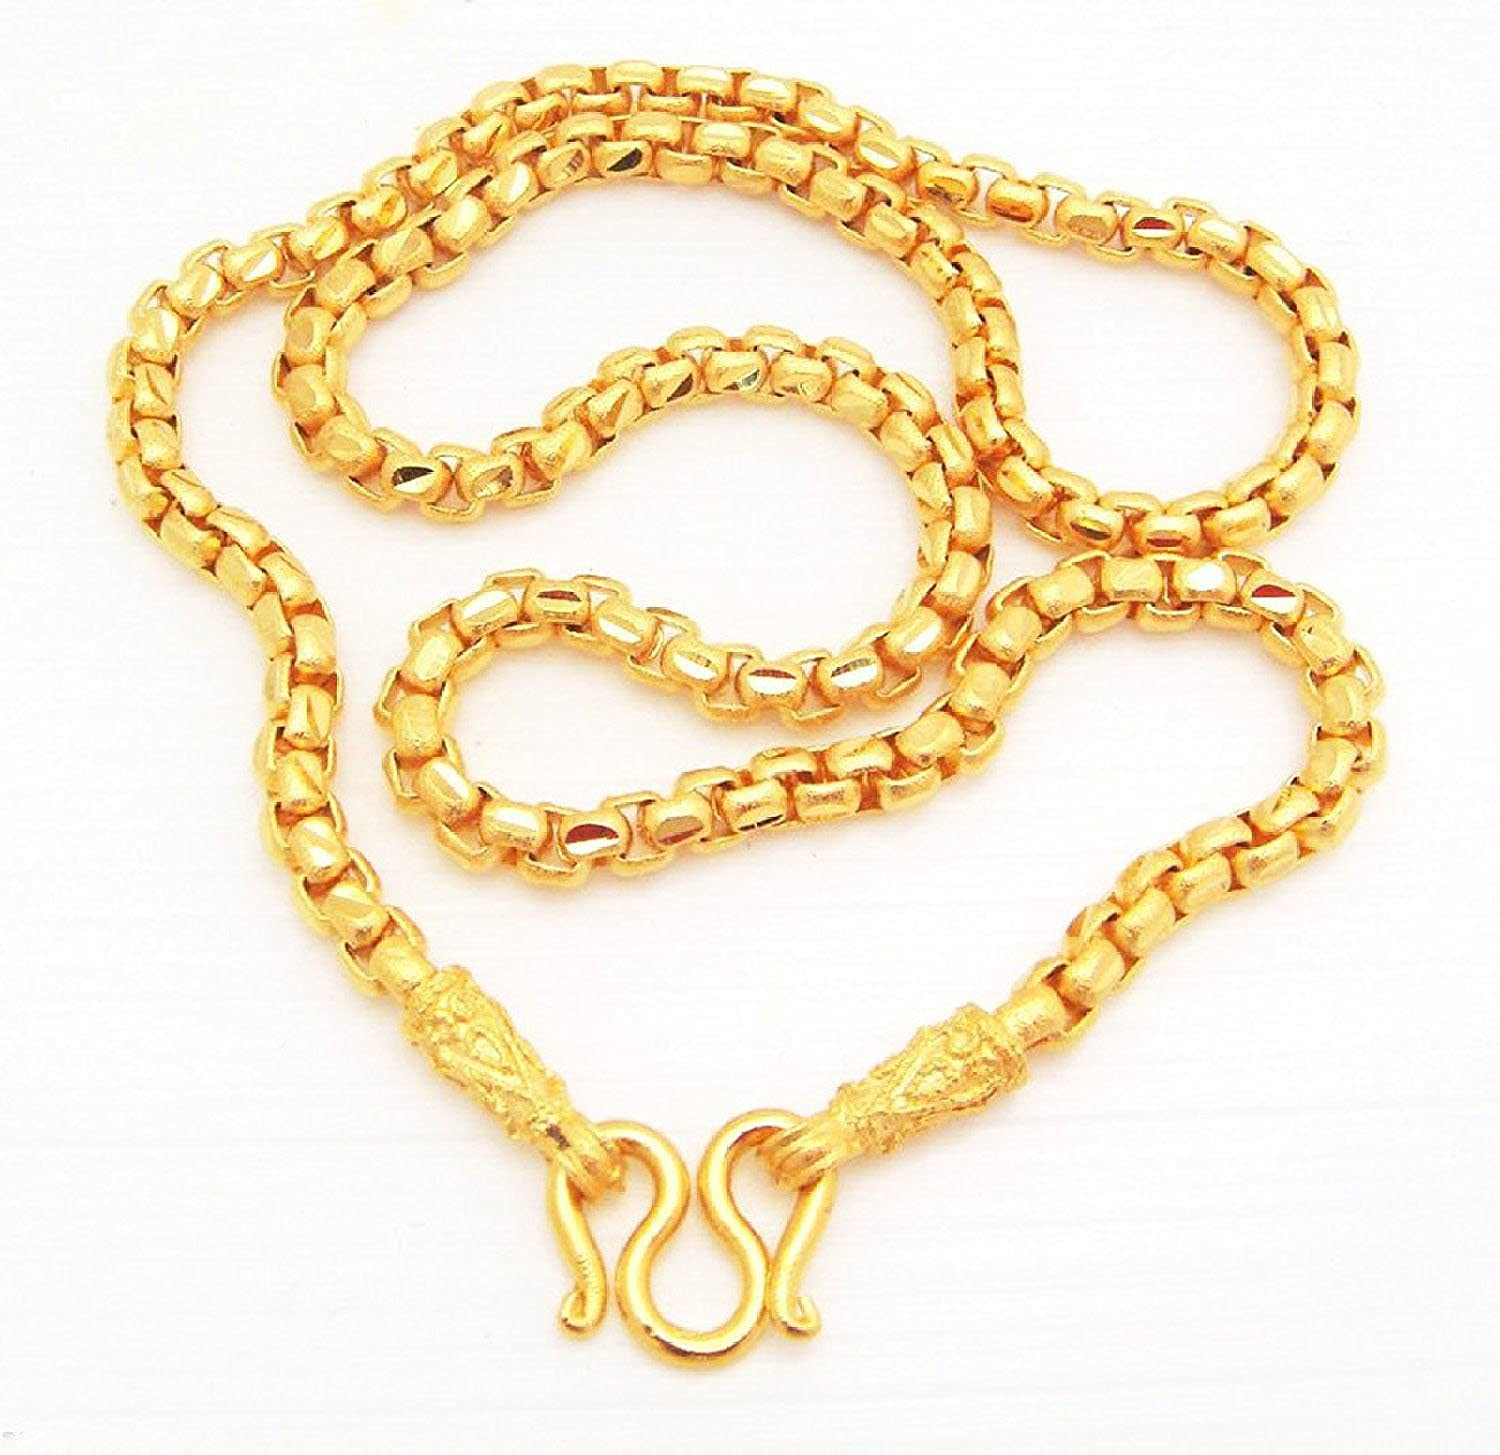 gold arabia men price s sa necklace chain filled yellow en mens saudi cuban chains from souq product